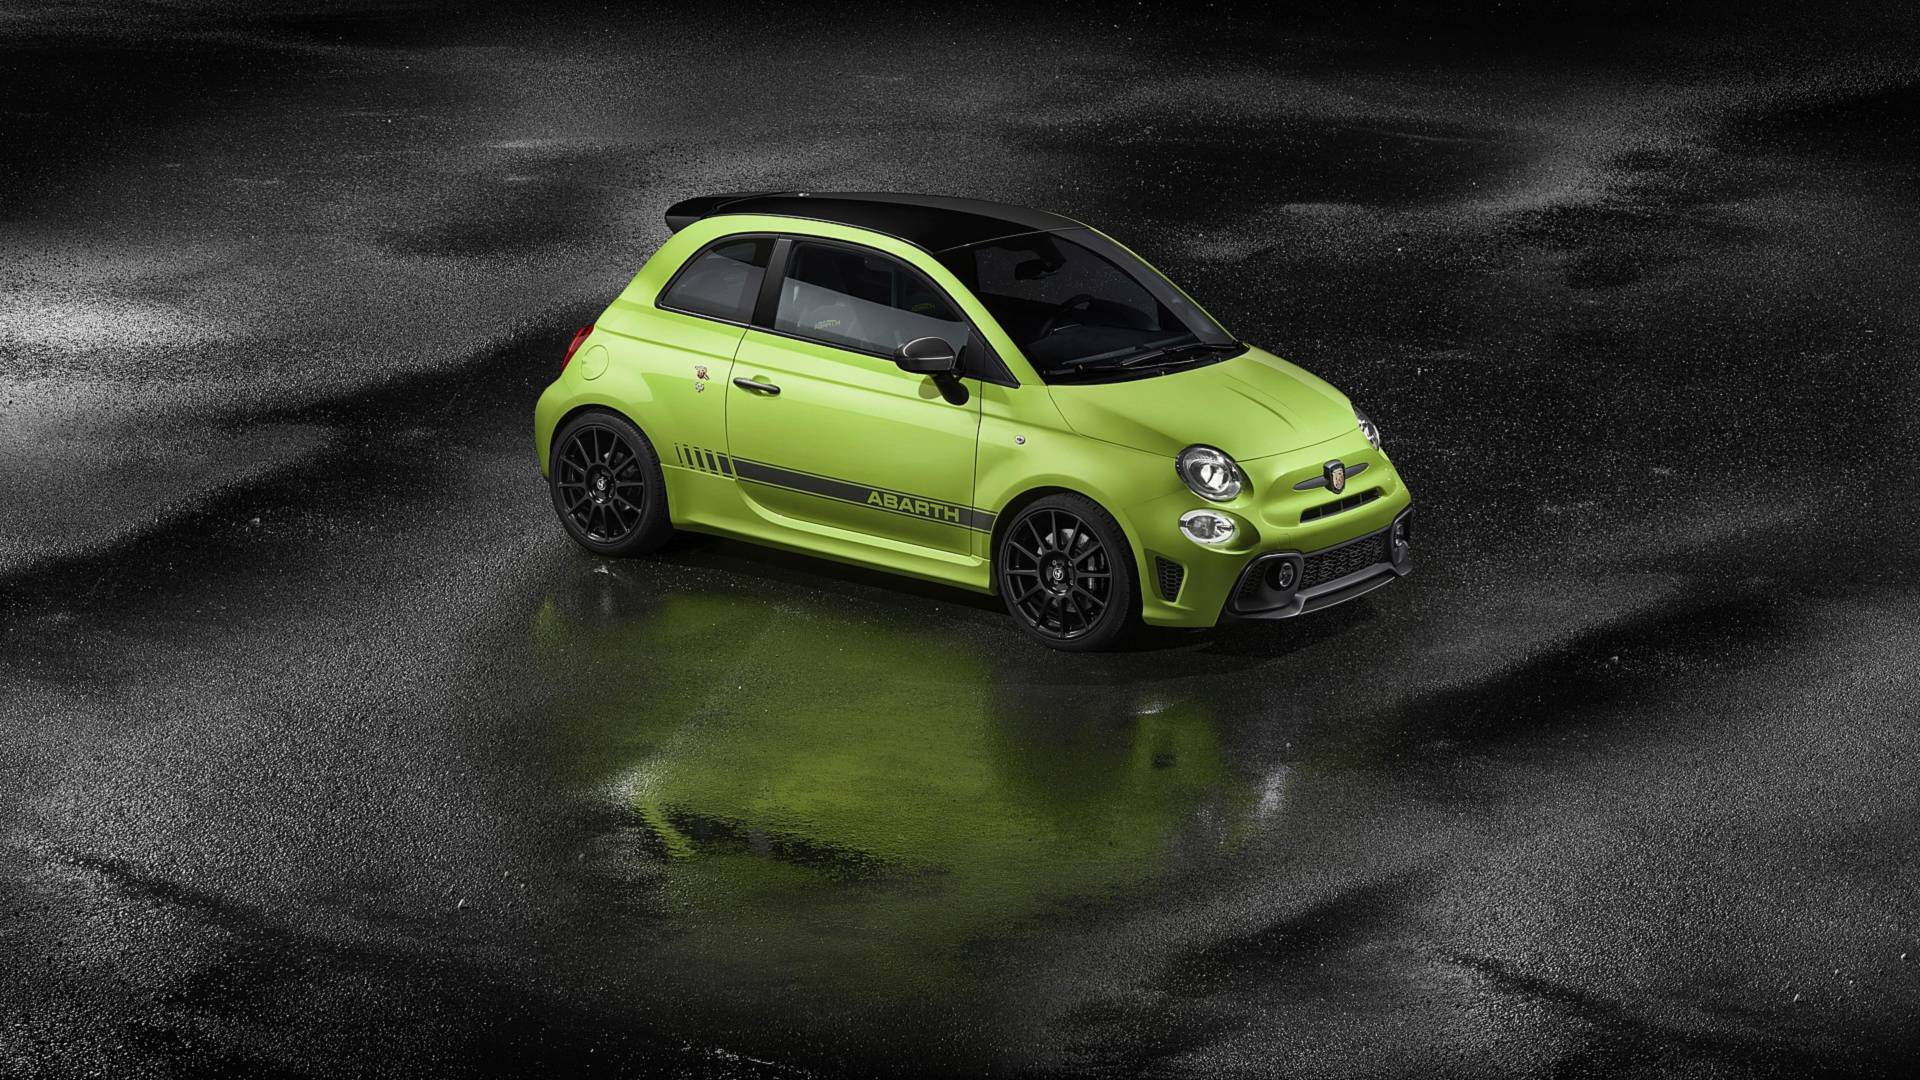 Abarth's Fiat 500-based 595 pocket rocket is updated for 2019